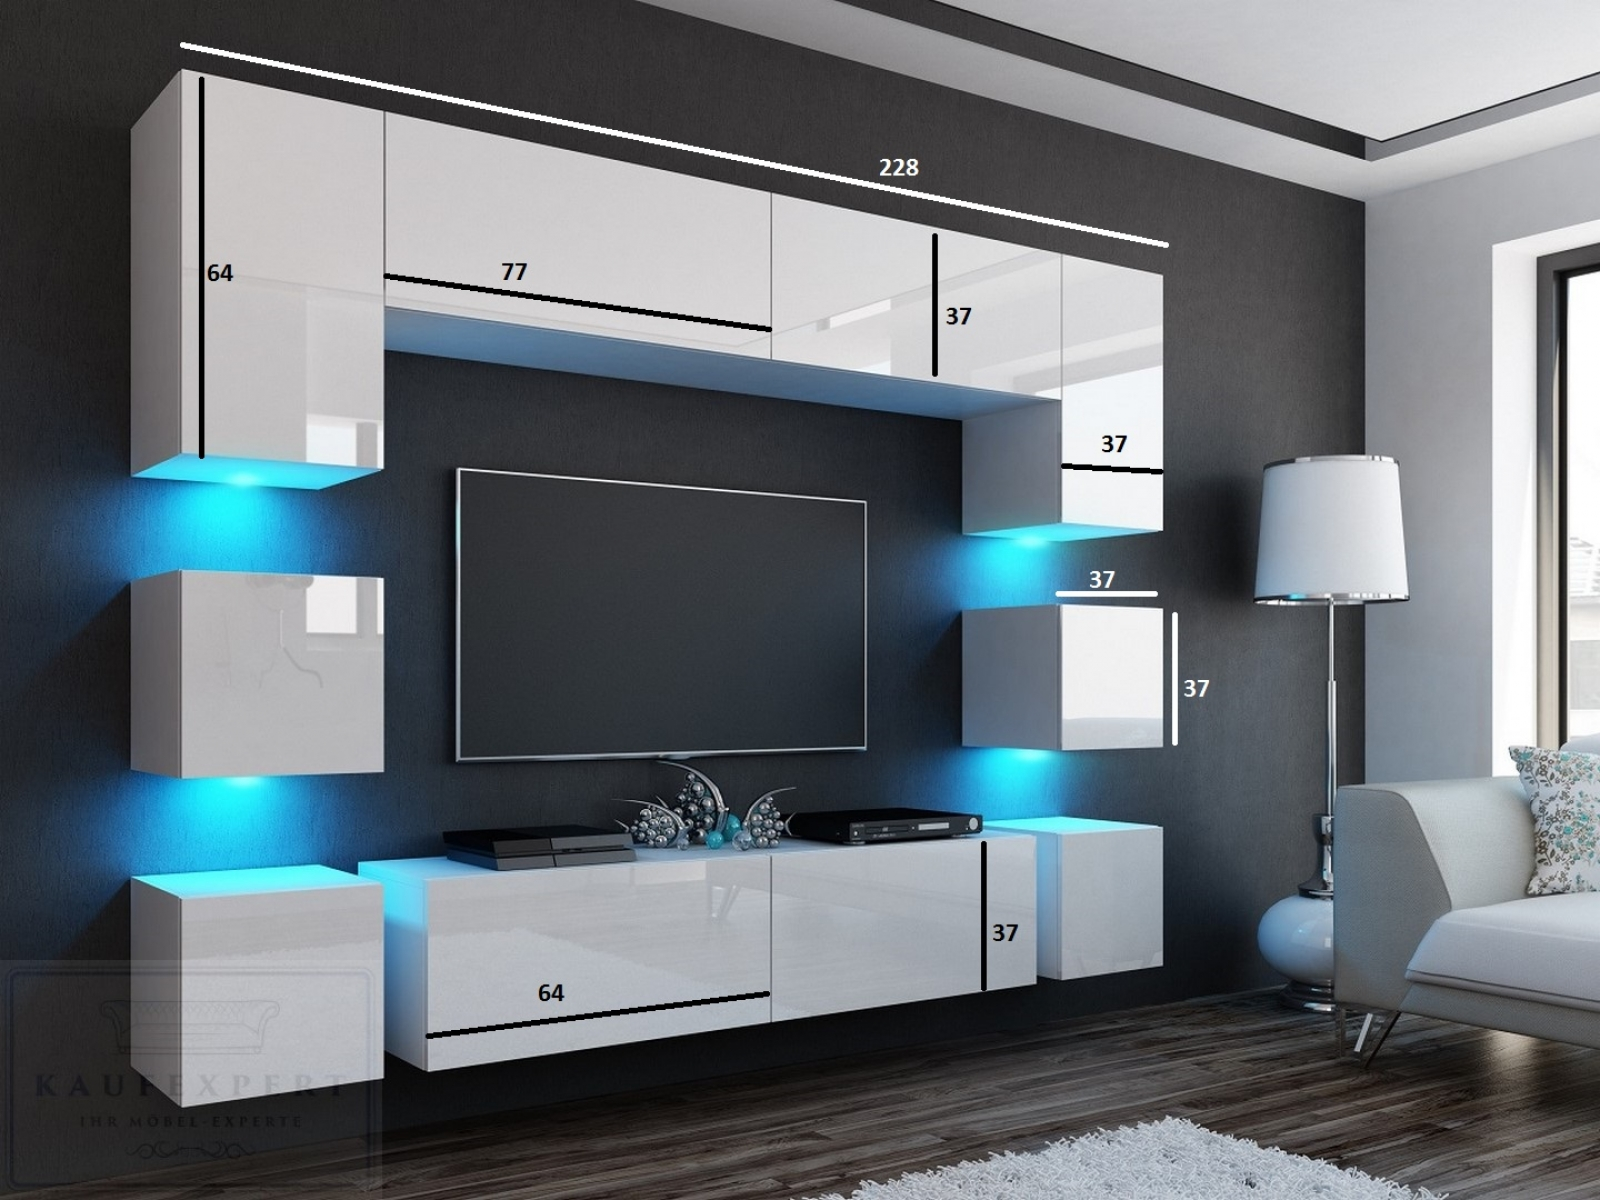 kaufexpert wohnwand quadro grau hochglanz wei 228 cm mediawand medienwand design modern led. Black Bedroom Furniture Sets. Home Design Ideas